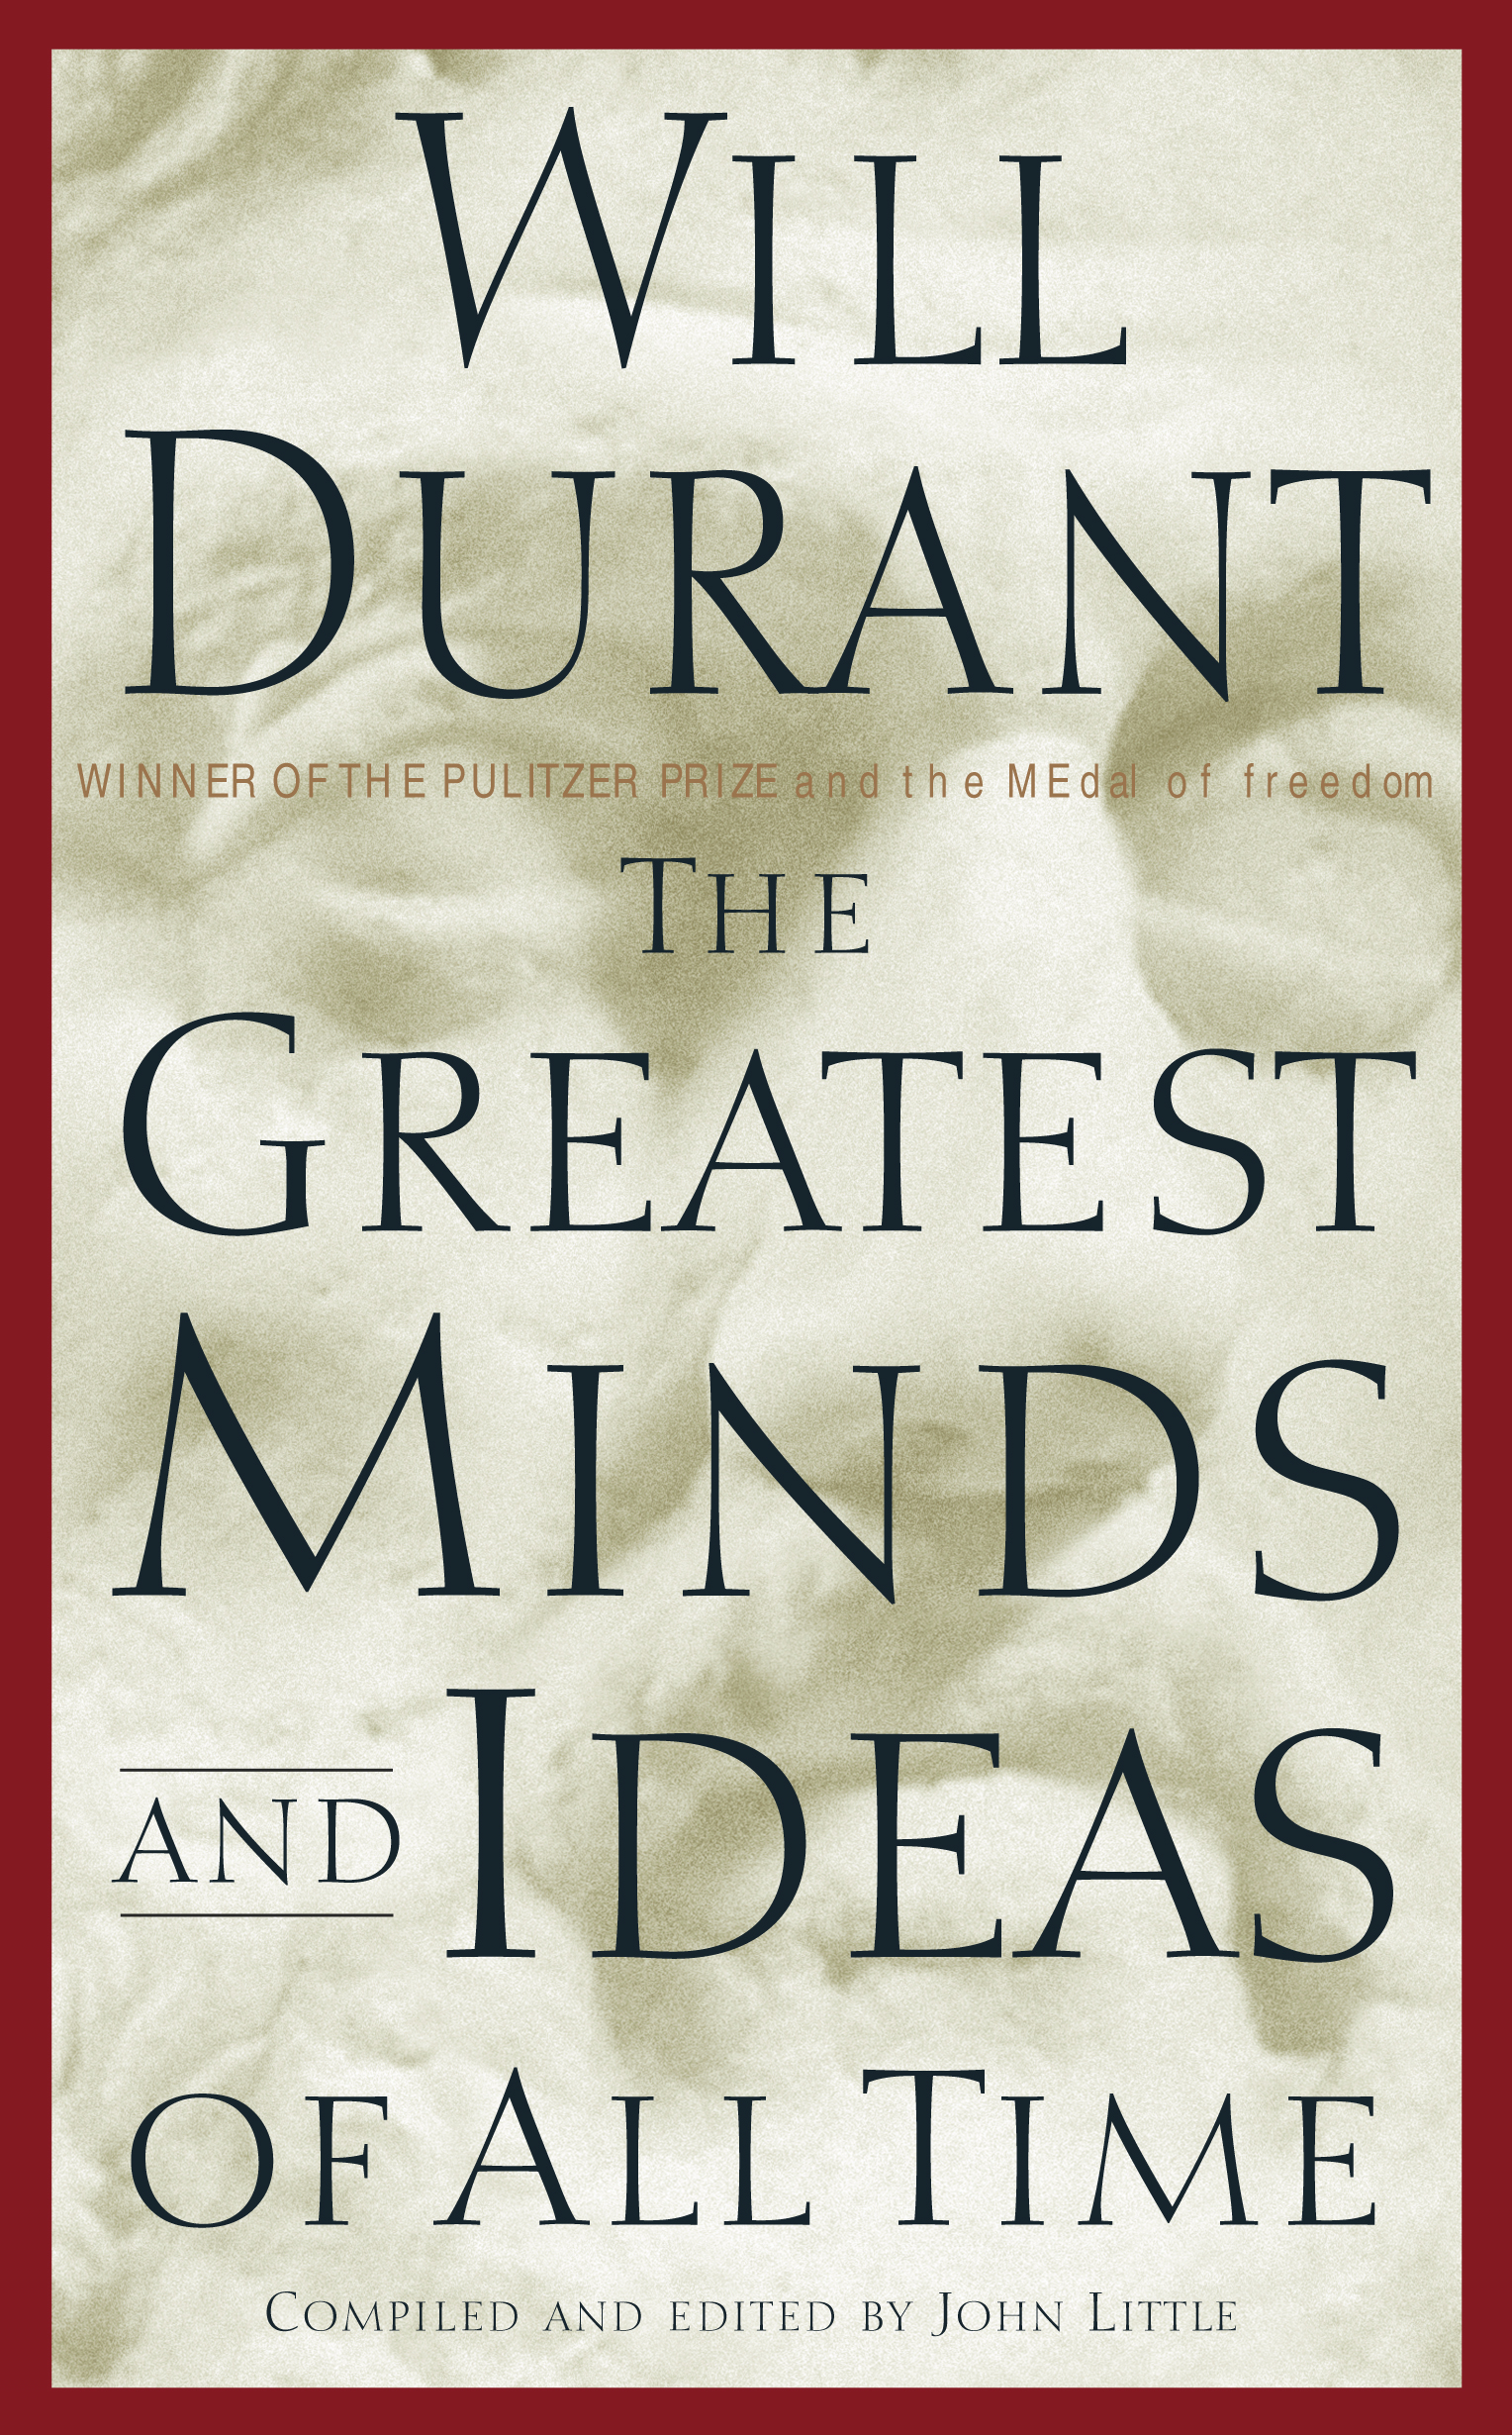 Cvr9780743235532 9780743235532 hr. The Greatest Minds and Ideas of All Time